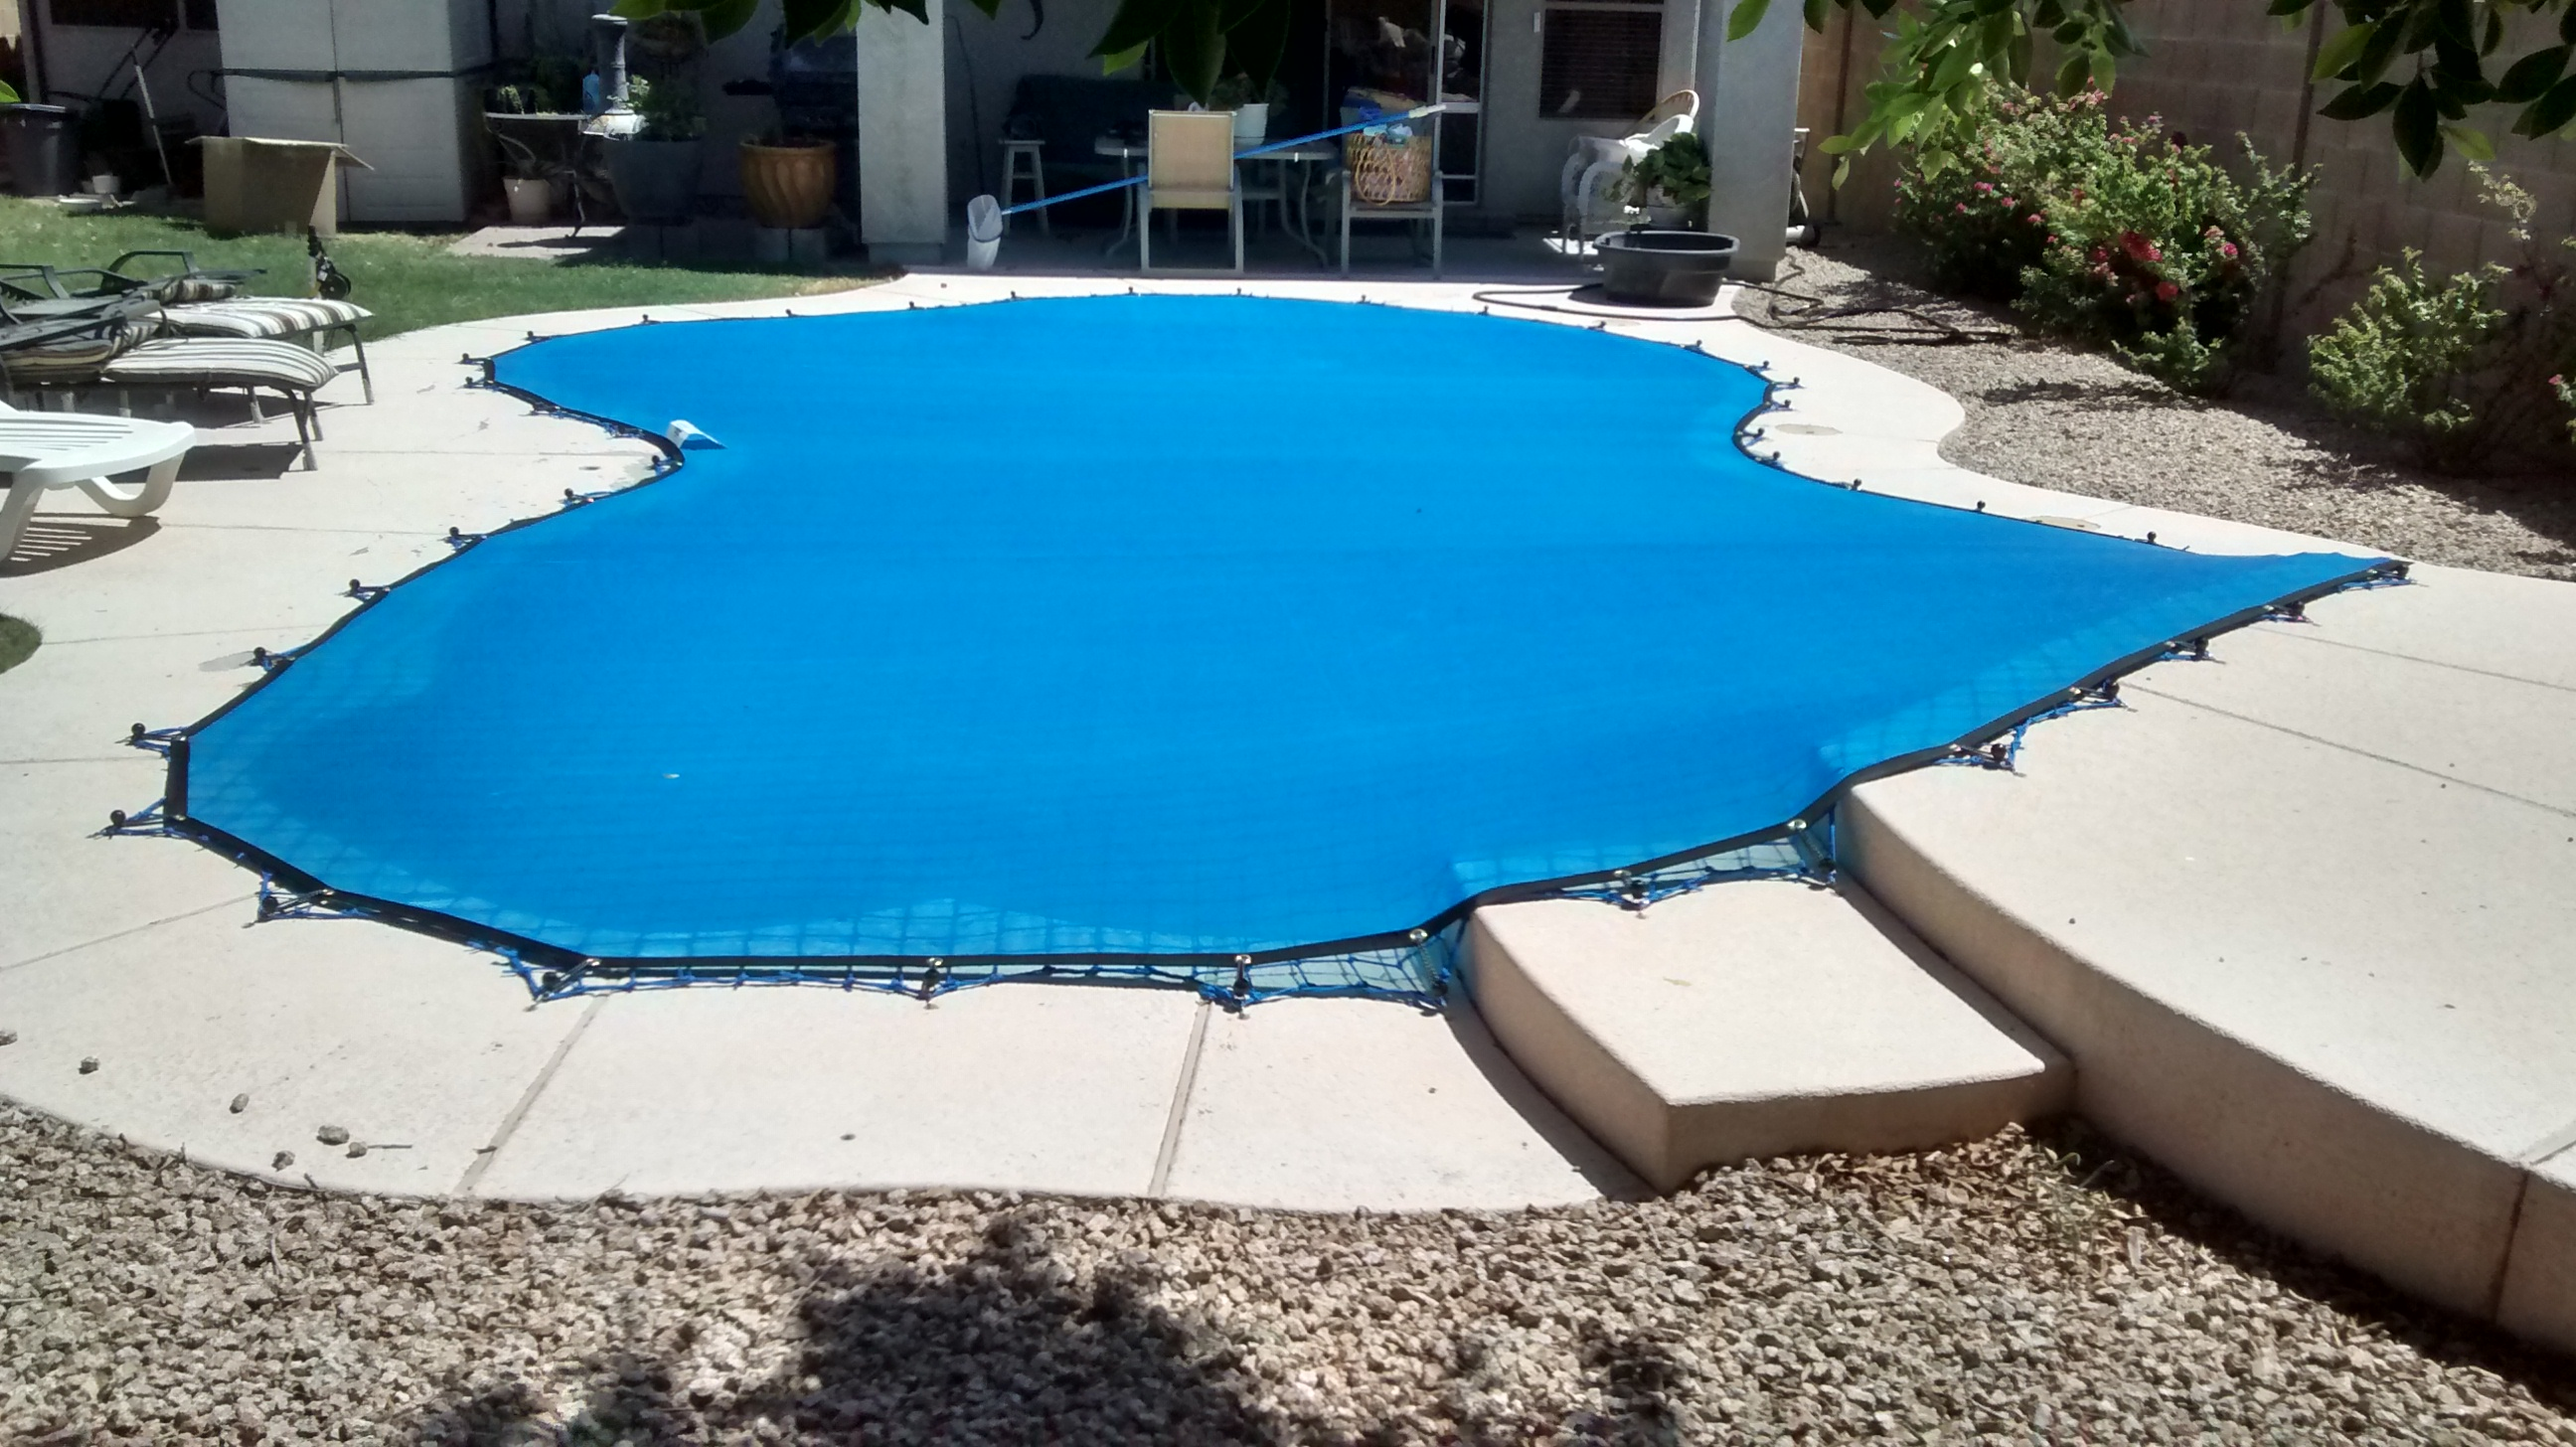 Blue pool cover with concrete pool deck